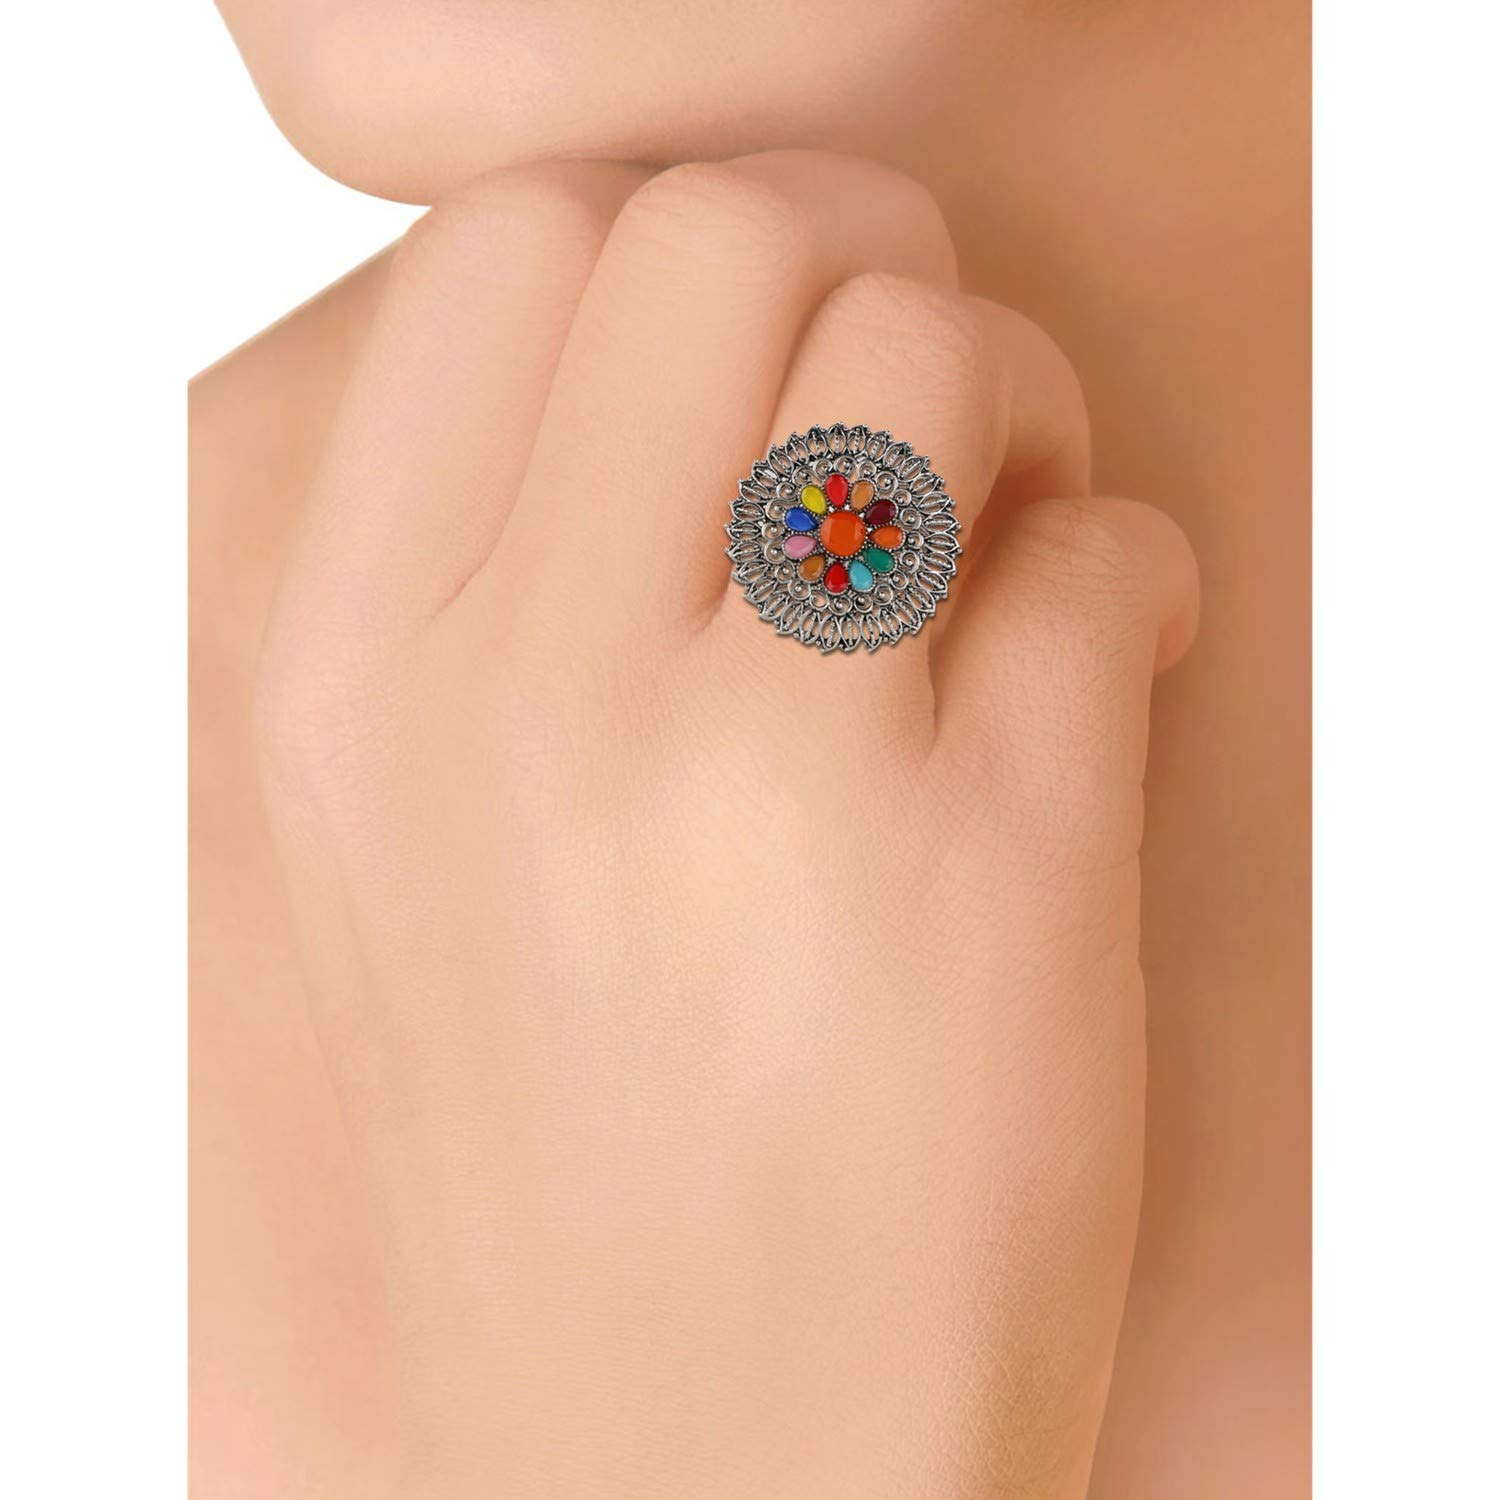 Amazon.com: Efulgenz Boho Floral Multicolor Vintage Gypsy ...